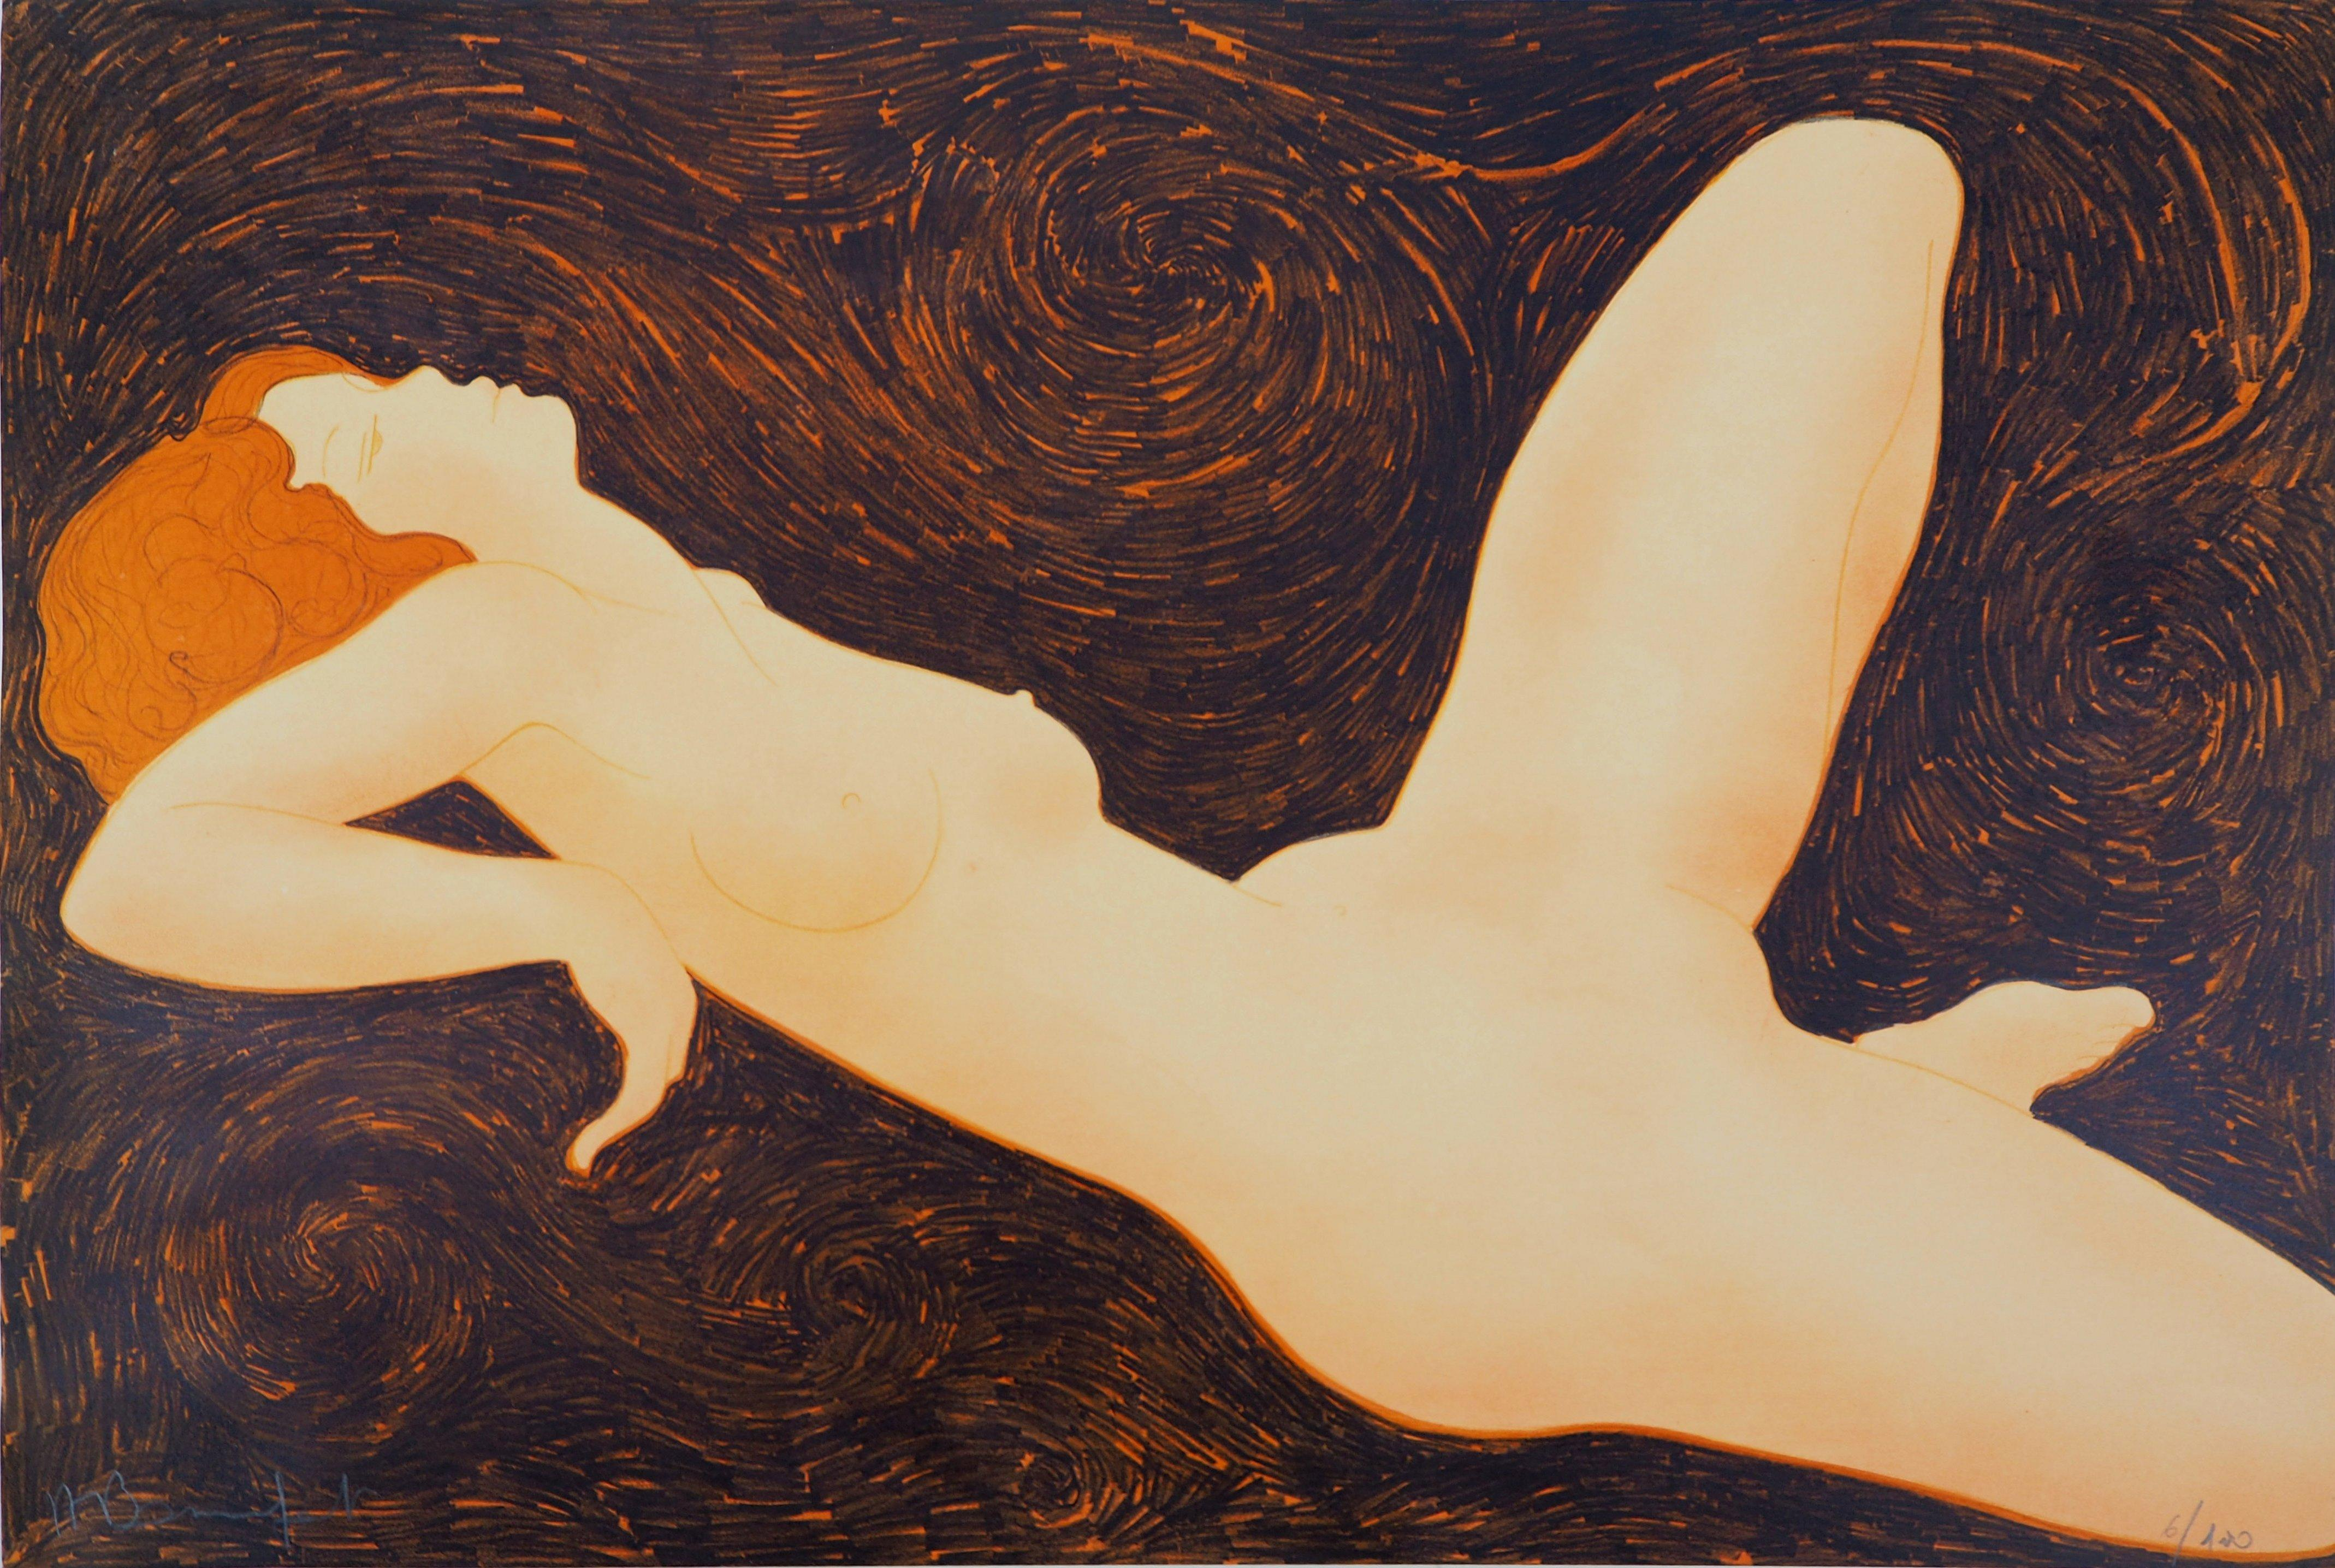 Erotic Dream - Original lithograph, Handsigned and Numbered /100